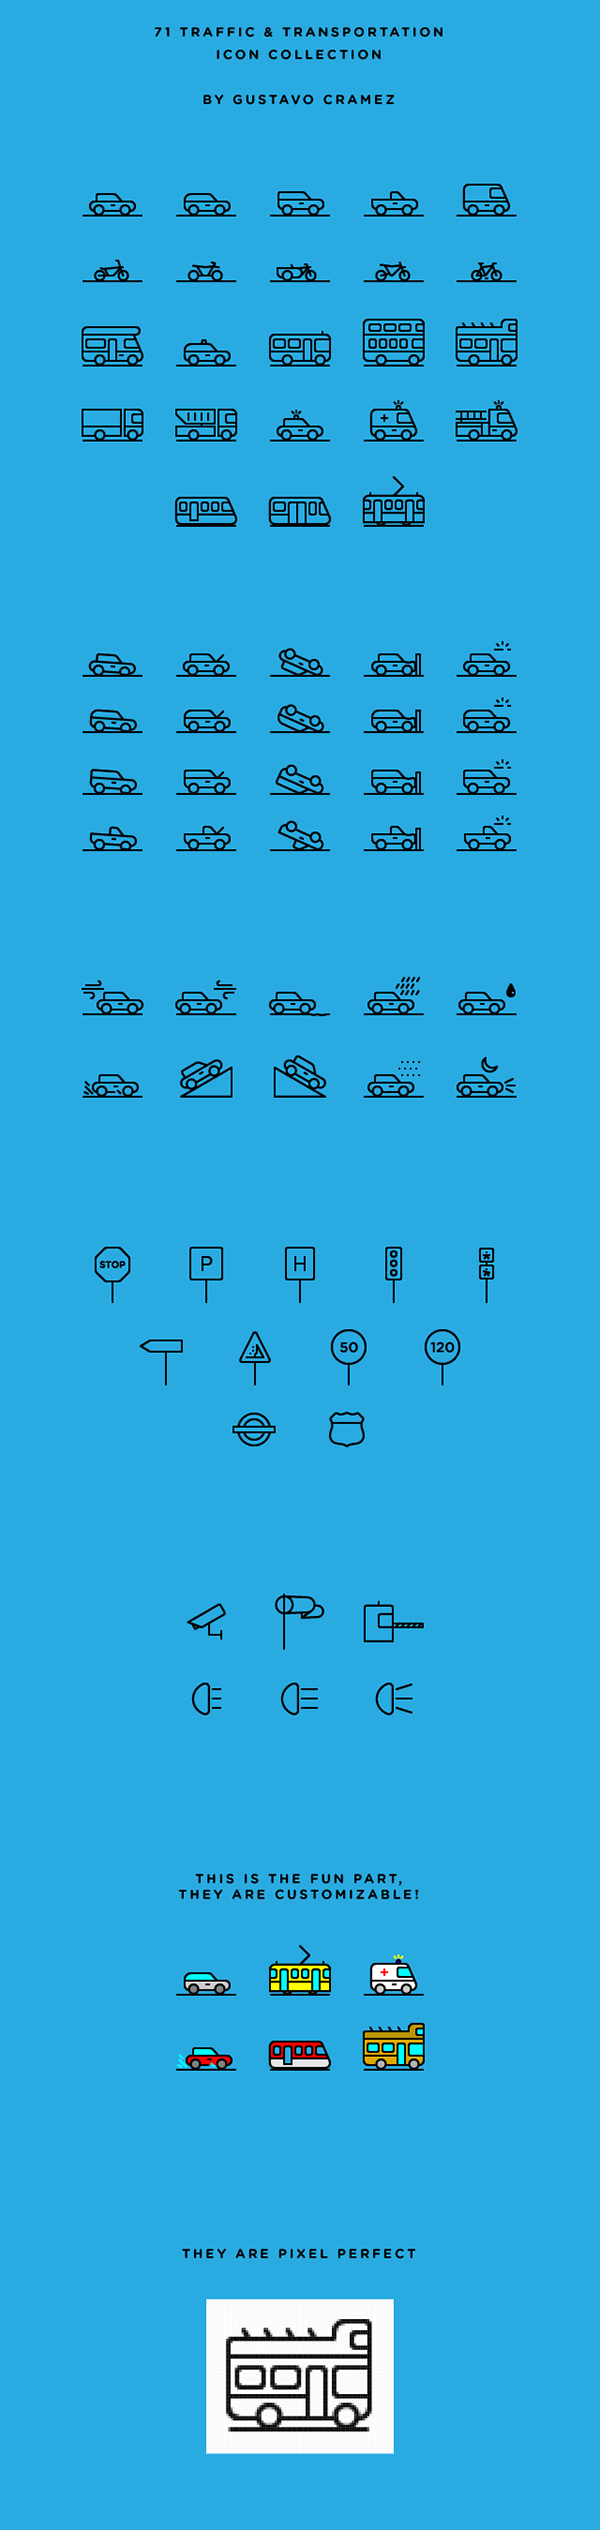 Cars,Transport,traffic,transportation,outline,iconography,bus,train,Bike,accident,ambulance,police,Travel,Conditions